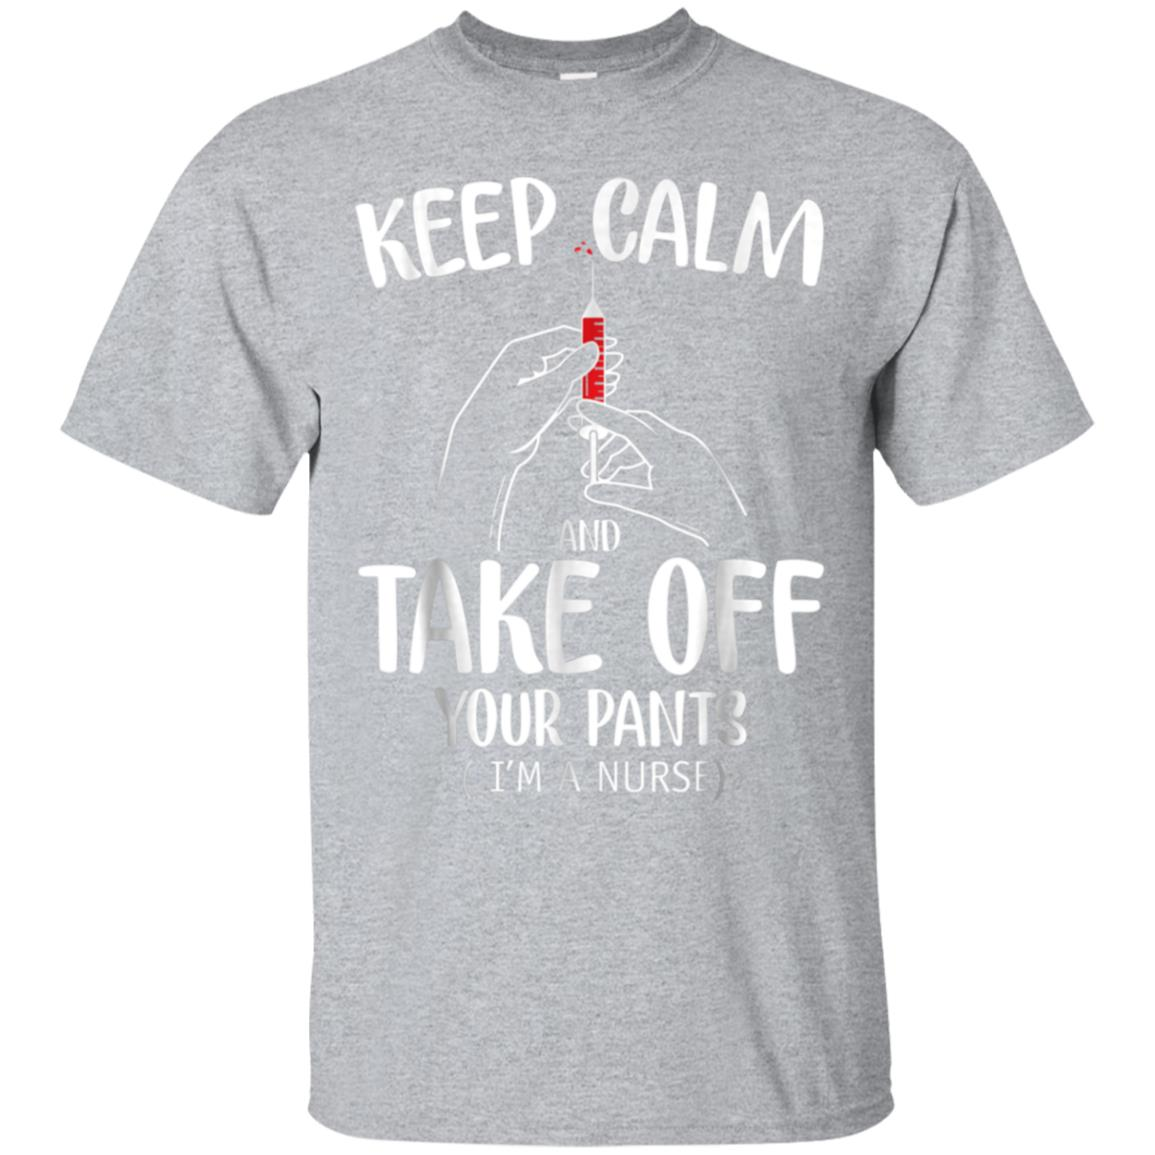 Keep calm and take off your pants I'm a Nurse Tshirt 99promocode